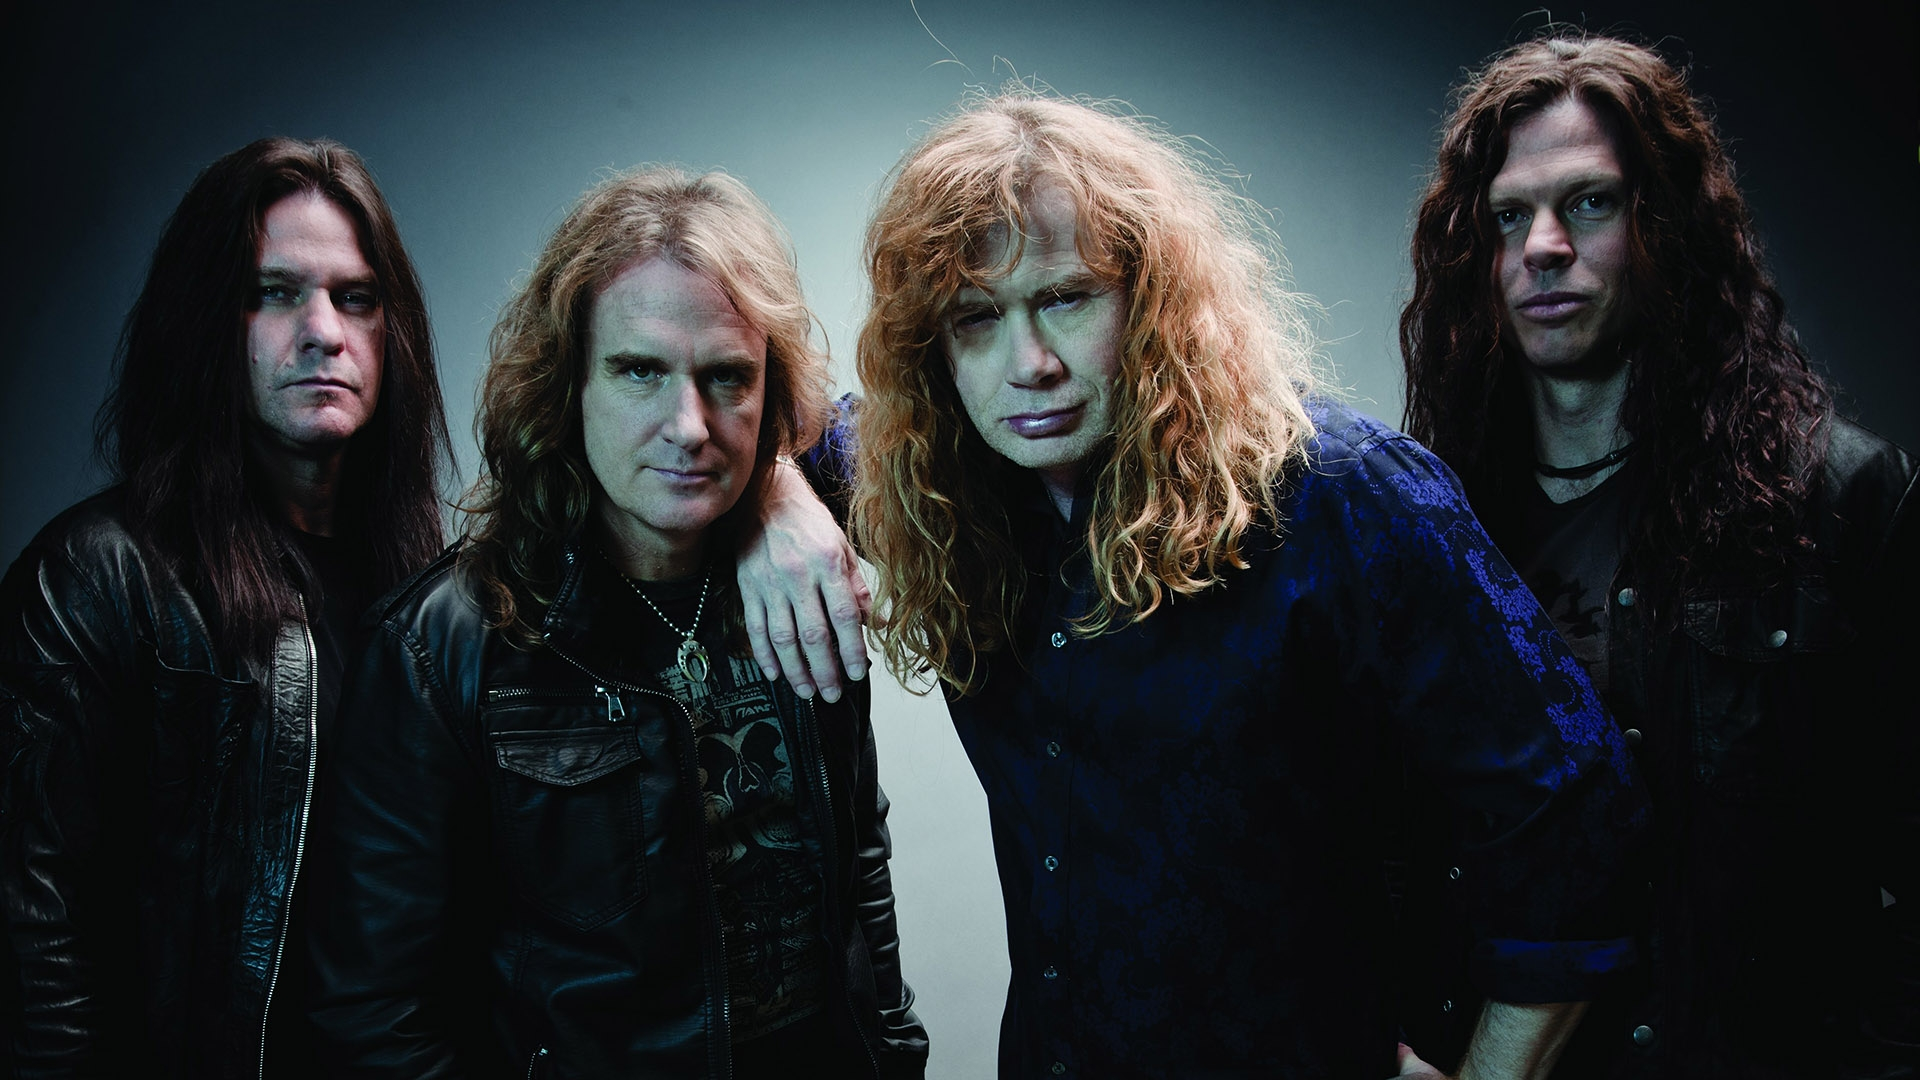 Get The Latest Megadeth Band Hair News Pictures And Videos Learn All About From Wallpapers4uorg Your Wallpaper Source